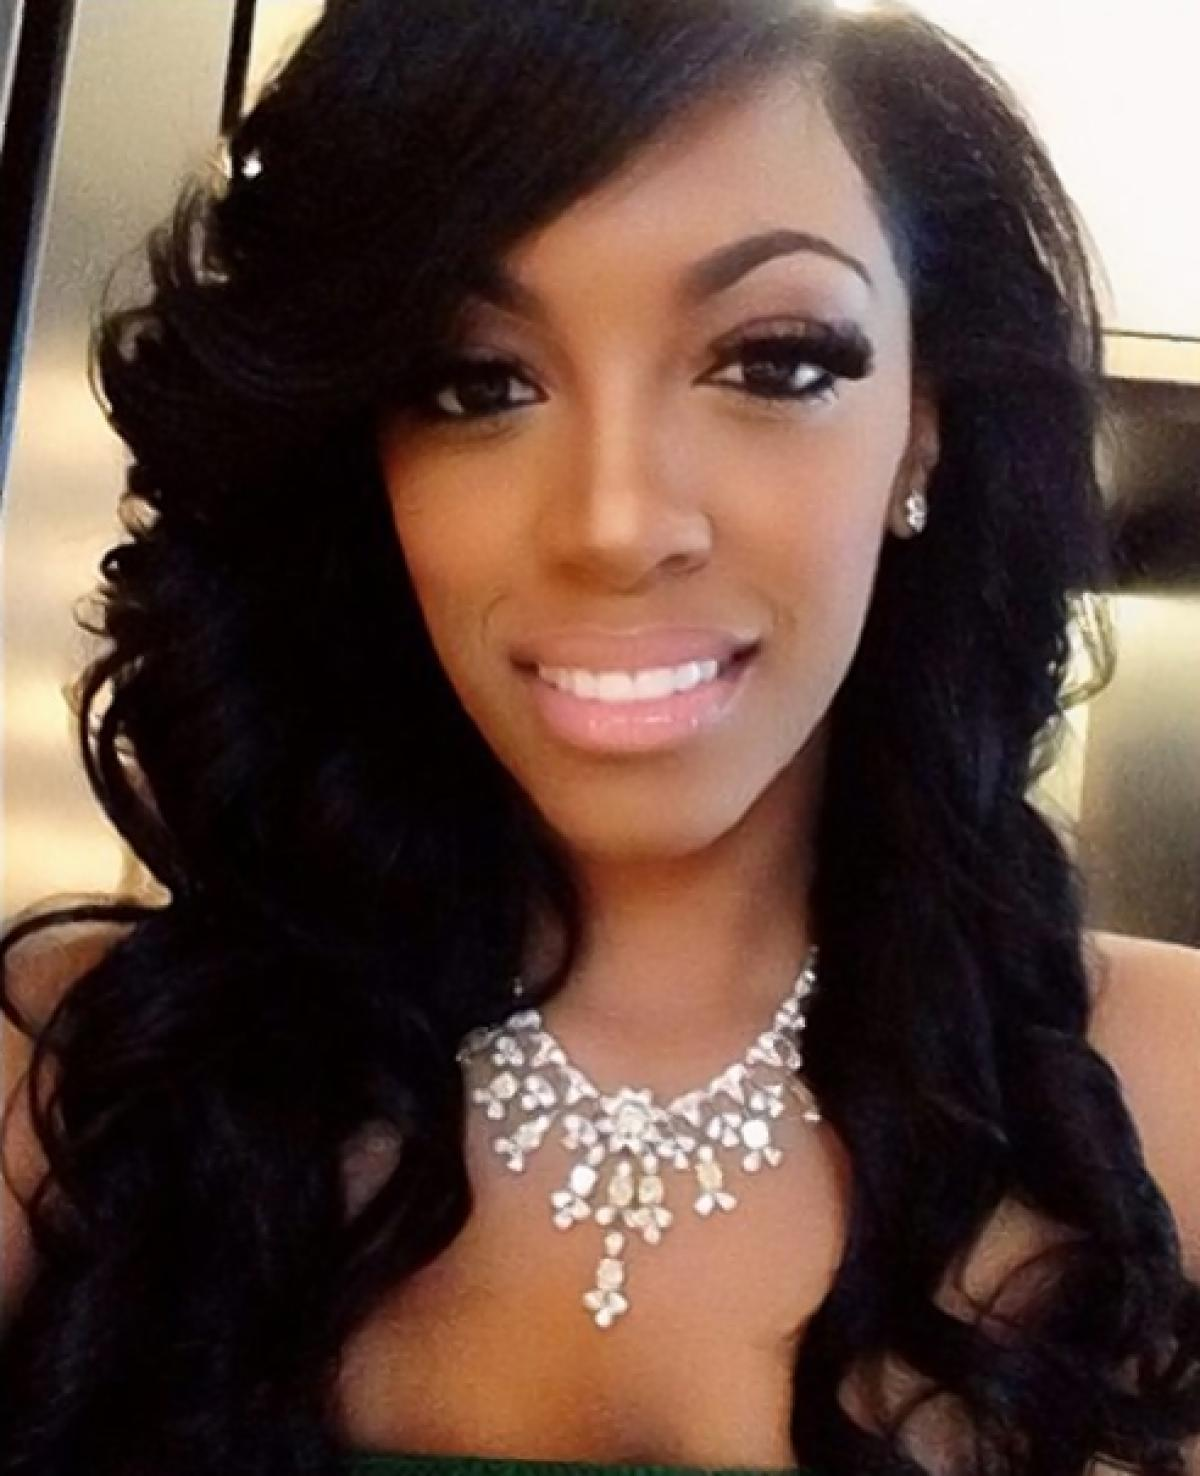 Brekaing! Real Housewives Of Atlanta: Did Porsha Already get out on bail?